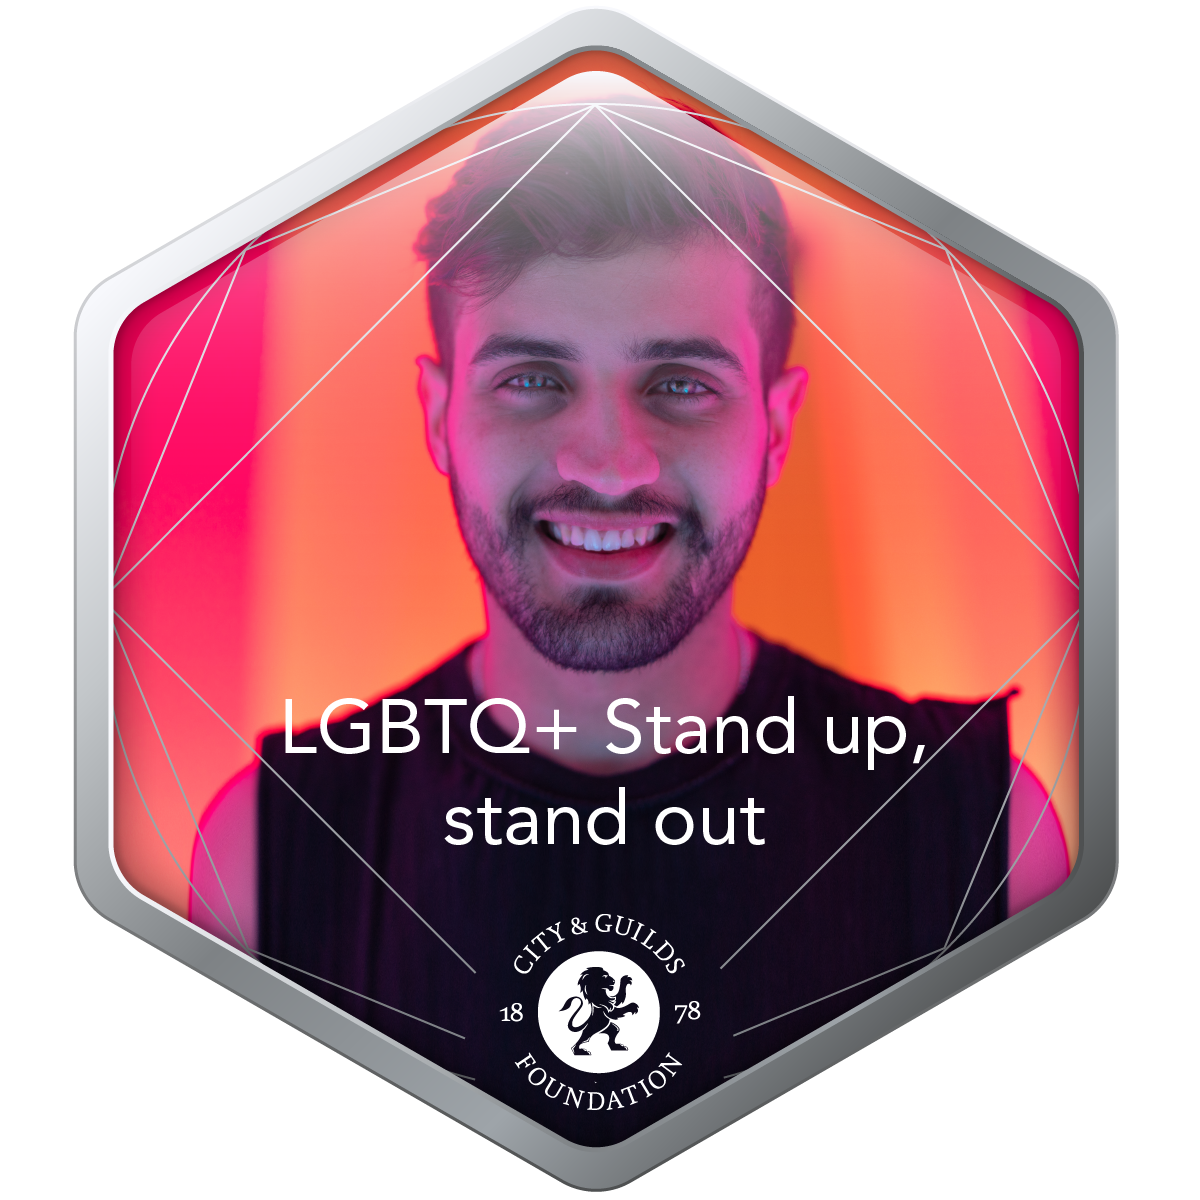 LGBTQ+ Stand up, Stand out